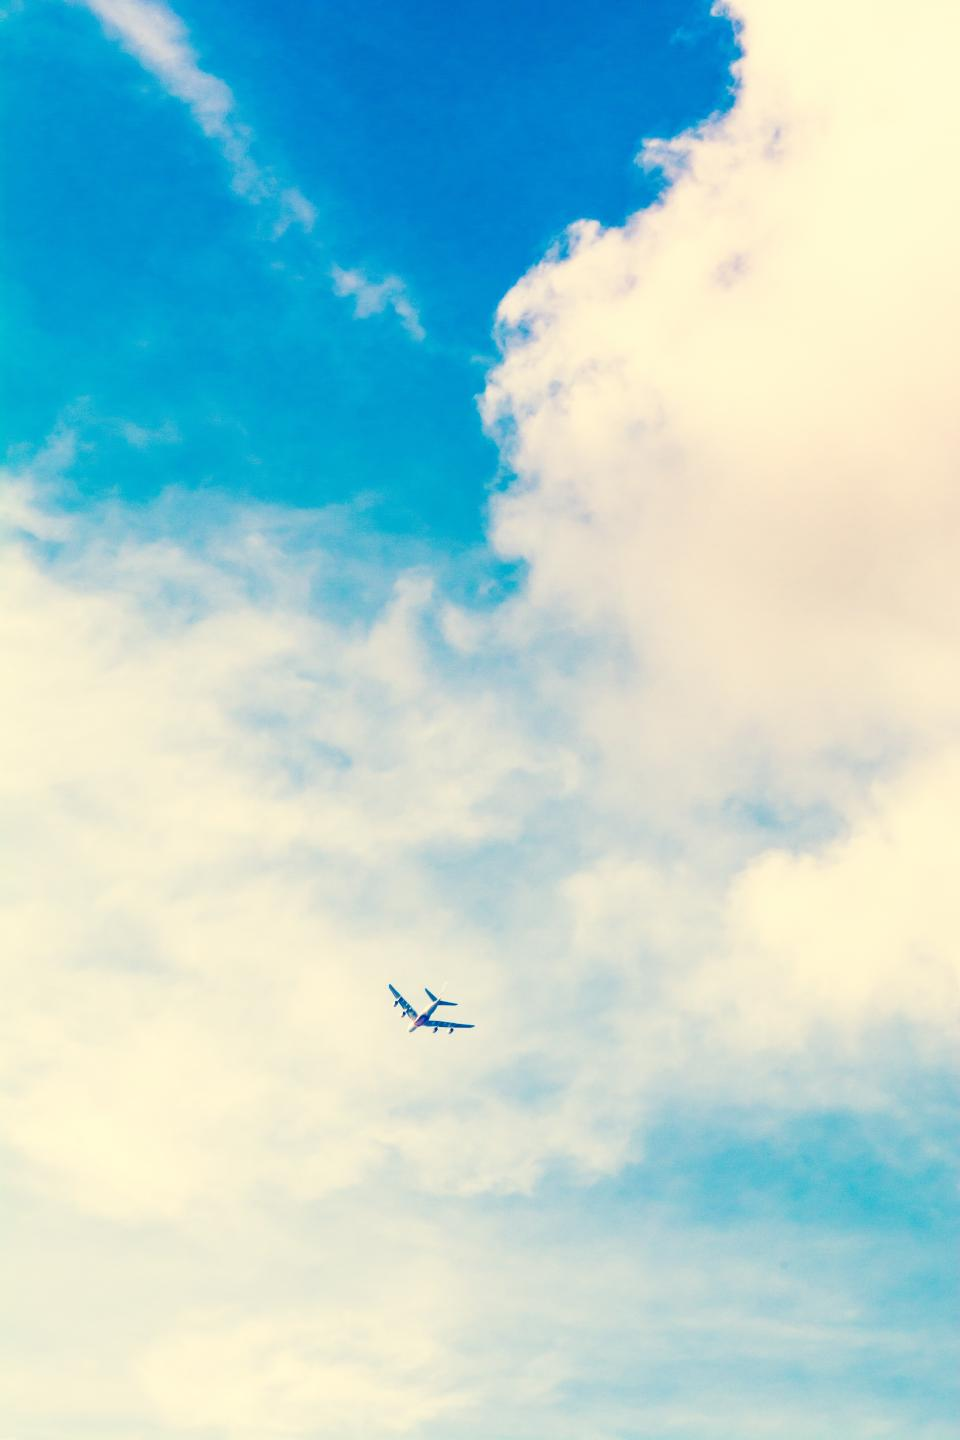 airplane, travel, adventure, plane, vacation, trip, transportation, vehicle, clouds, sky